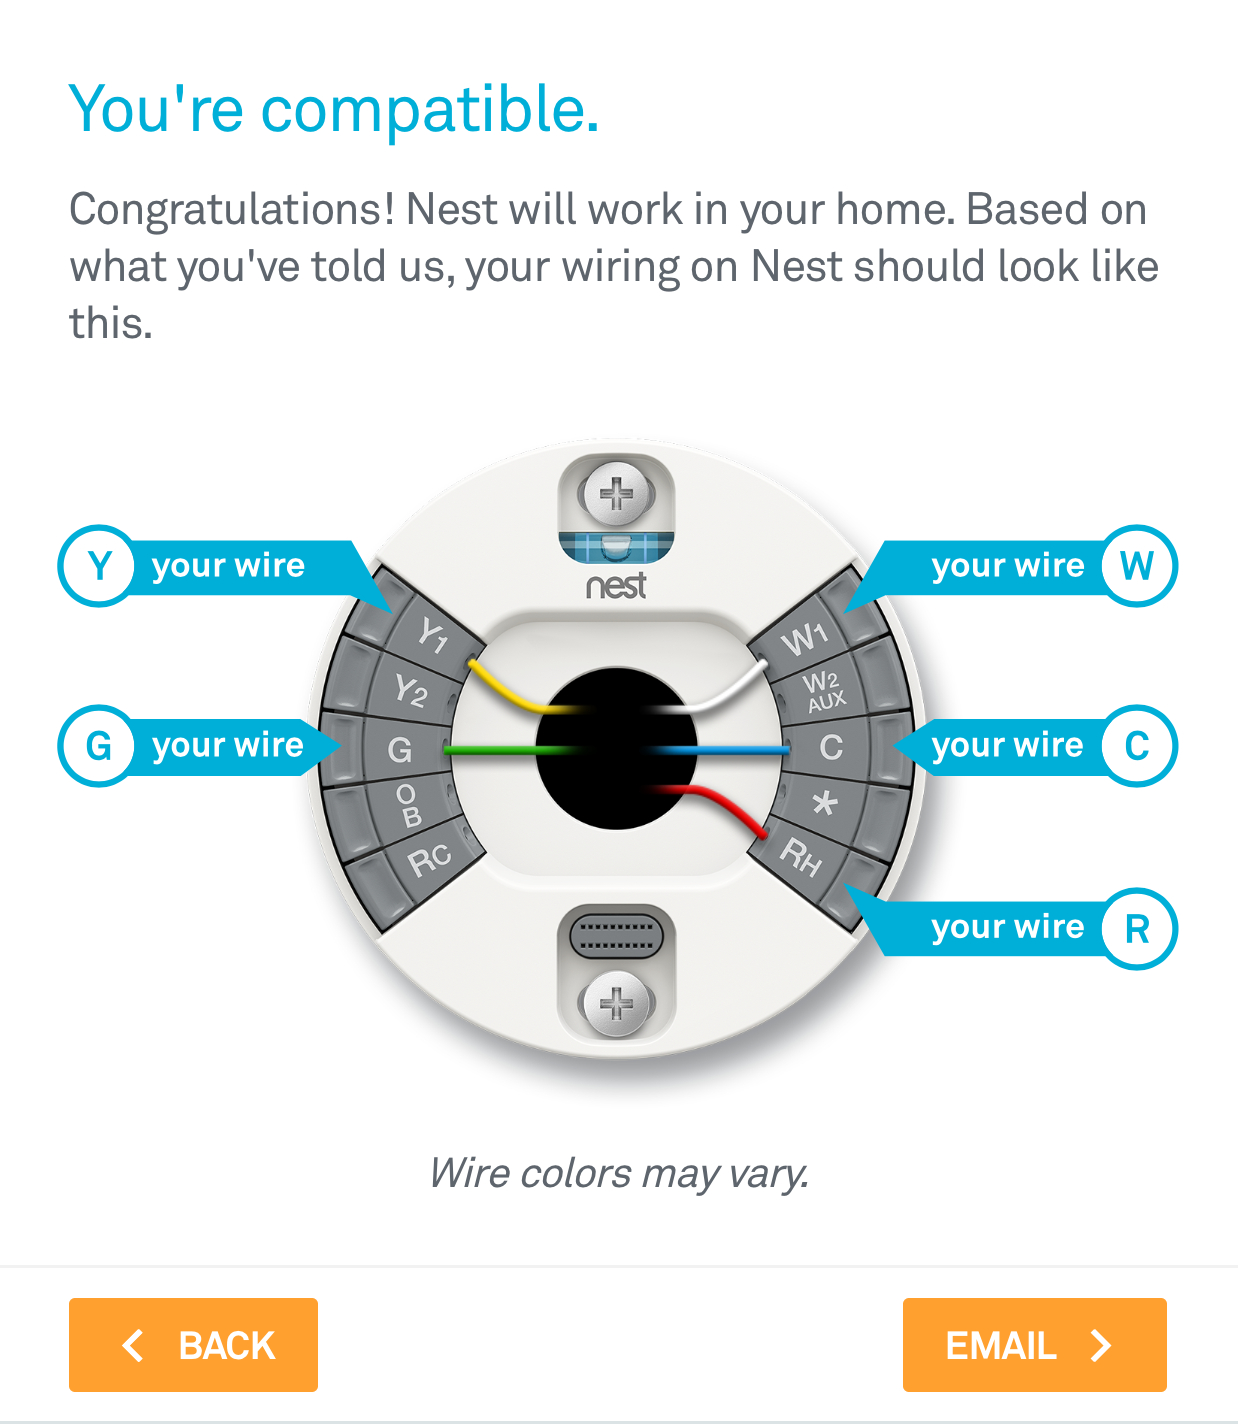 How To: Install The Nest Thermostat | The Craftsman Blog - How Should I Have The Nest 3Rd Generation Wiring Diagram